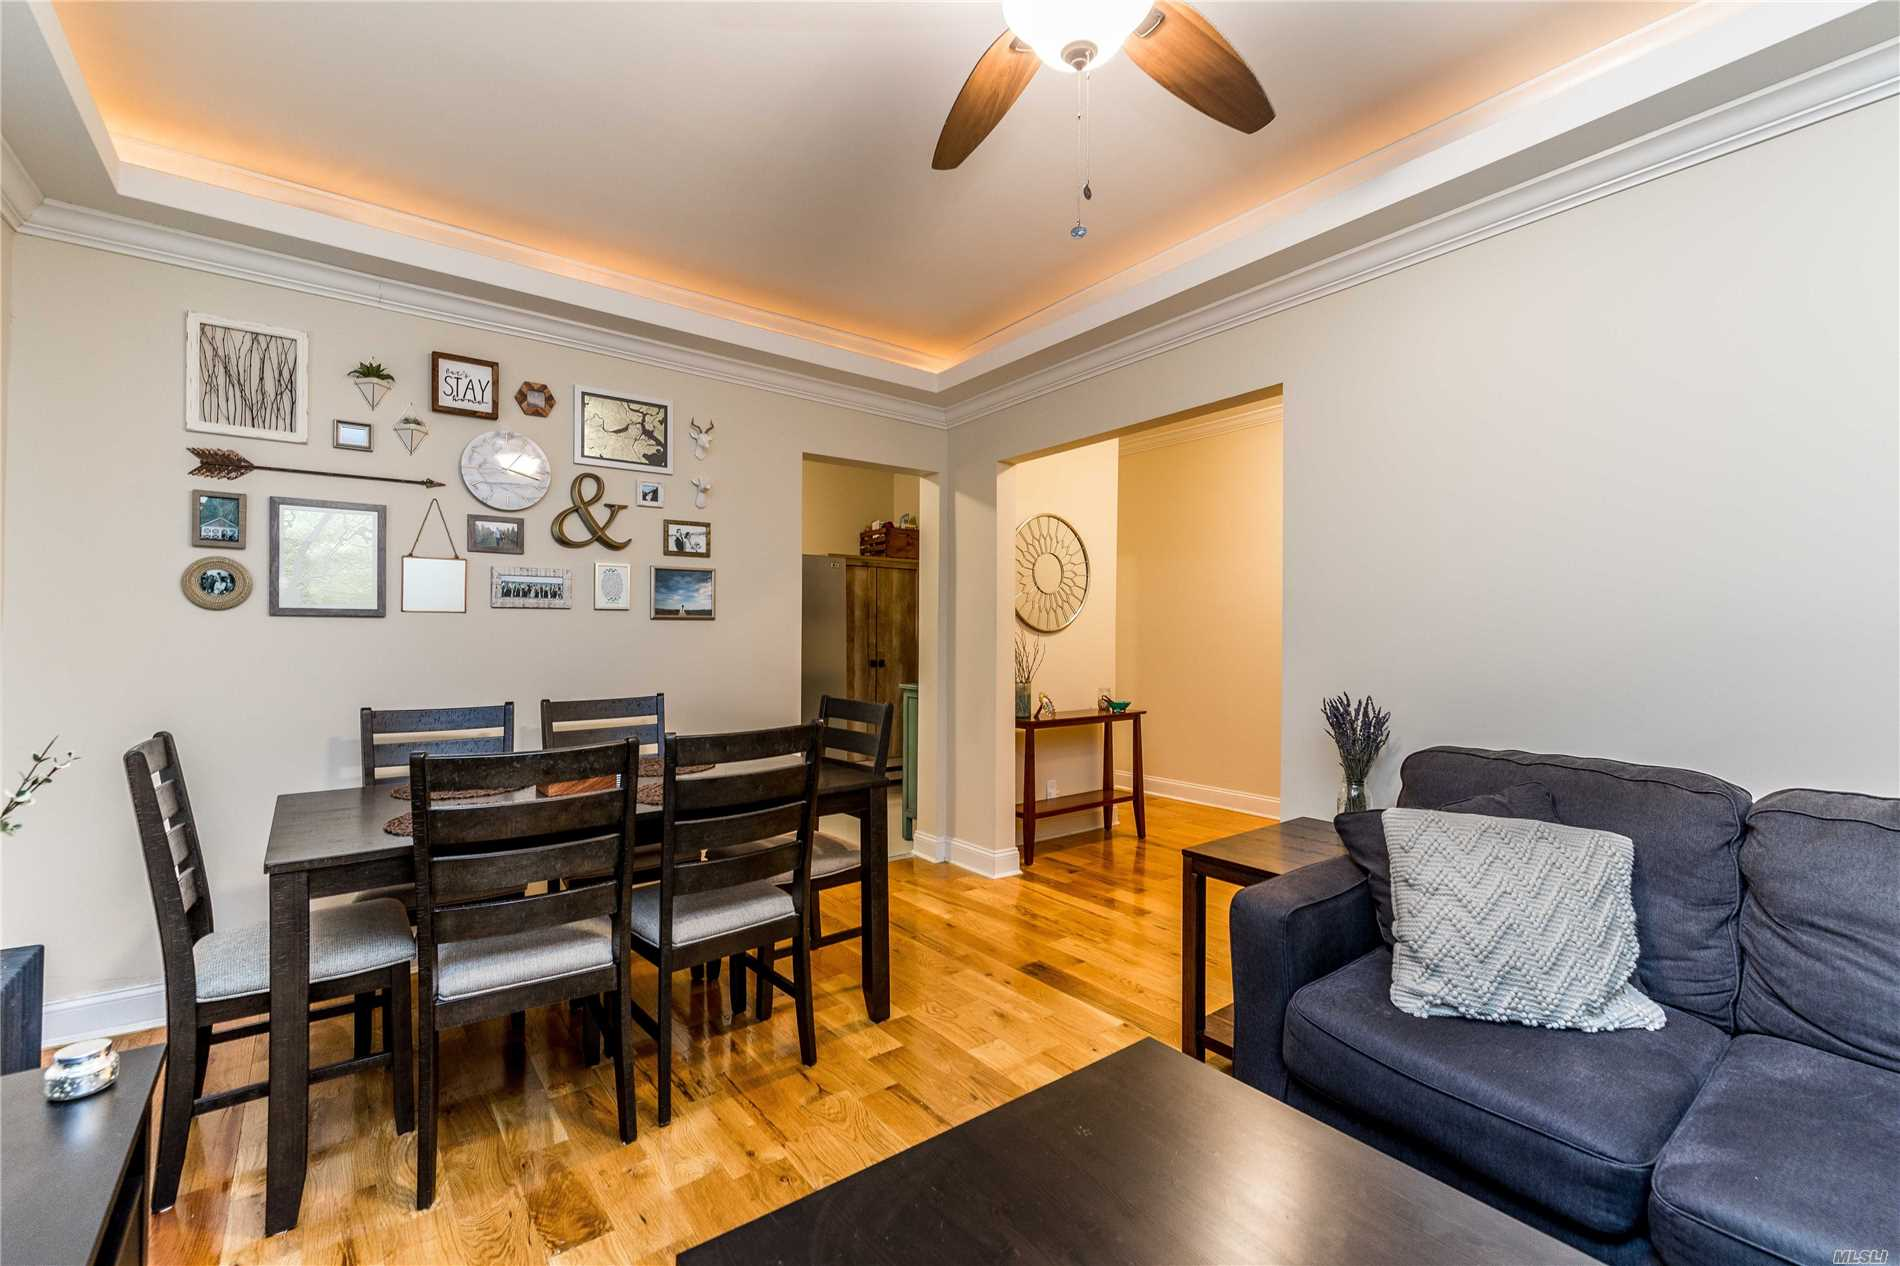 Welcome To The Ivanhoe, A Pet-Friendly Pre-War Building In Kew Gardens. This Modern Unit Is In Excellent Condition Located On The 1st Flr, Offering Hard-Wood Floors, Imported Doors, & Spacious Rooms. A Convenient Foyer As You Enter. Windowed Kitchen W/Beautiful Maple Cabinets And Plenty Of Counter Space. Renovated Bathroom. Large Corner Bedroom Offering Plenty Of Natural Light. Laundry In The Basement. Free Bike Storage. Conveniently Located Near The Lirr & J, Z, E, F Trains. Close To Forest Park